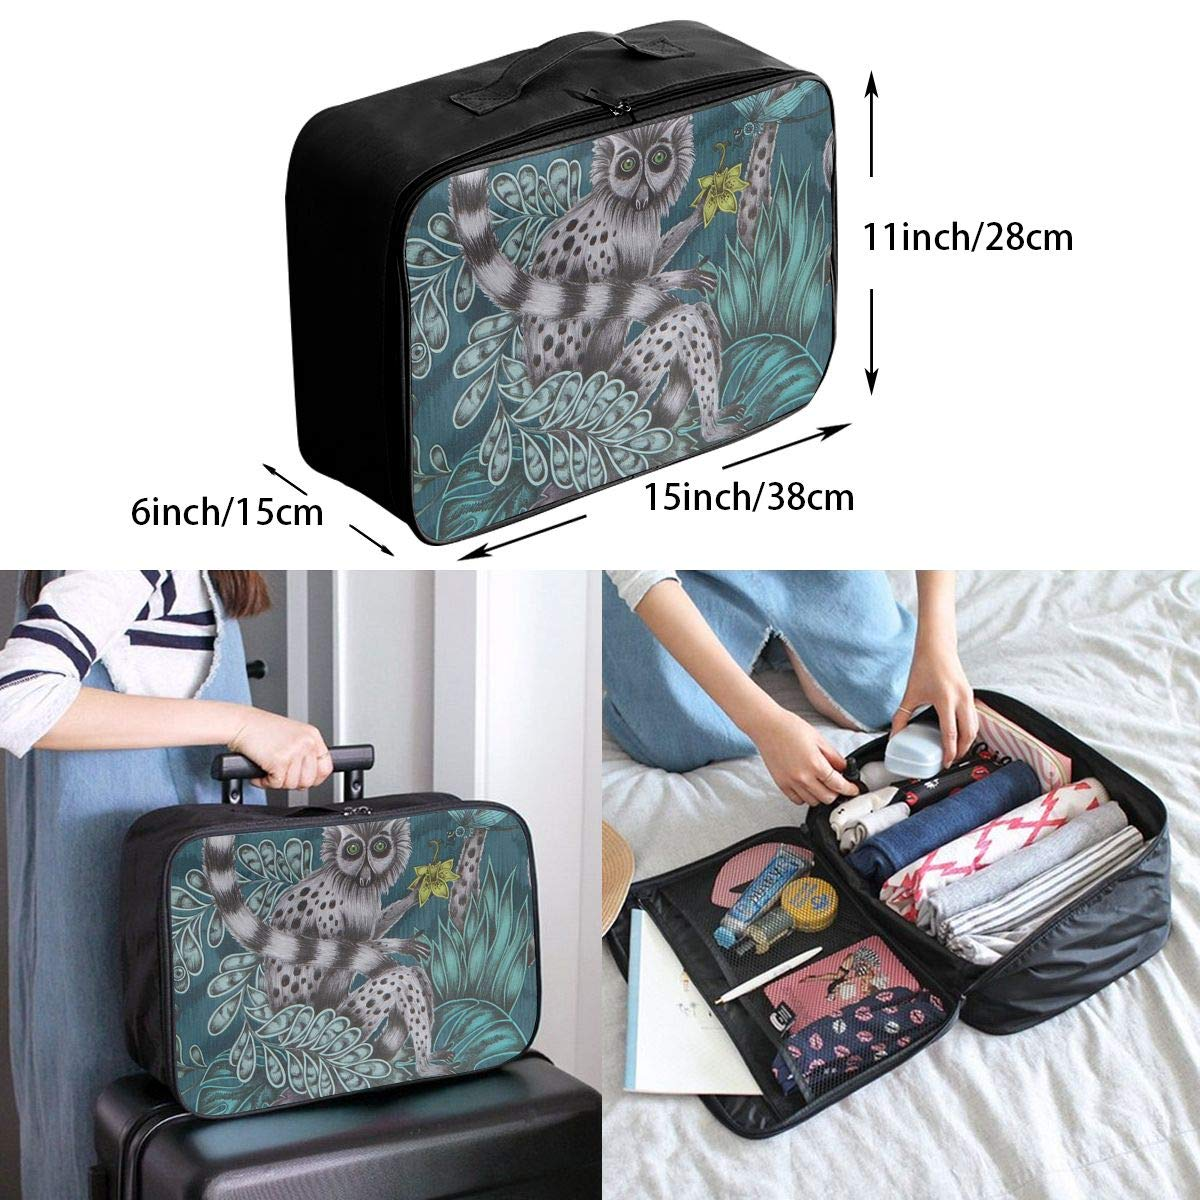 Travel Luggage Duffle Bag Lightweight Portable Handbag Lemur Pattern Large Capacity Waterproof Foldable Storage Tote